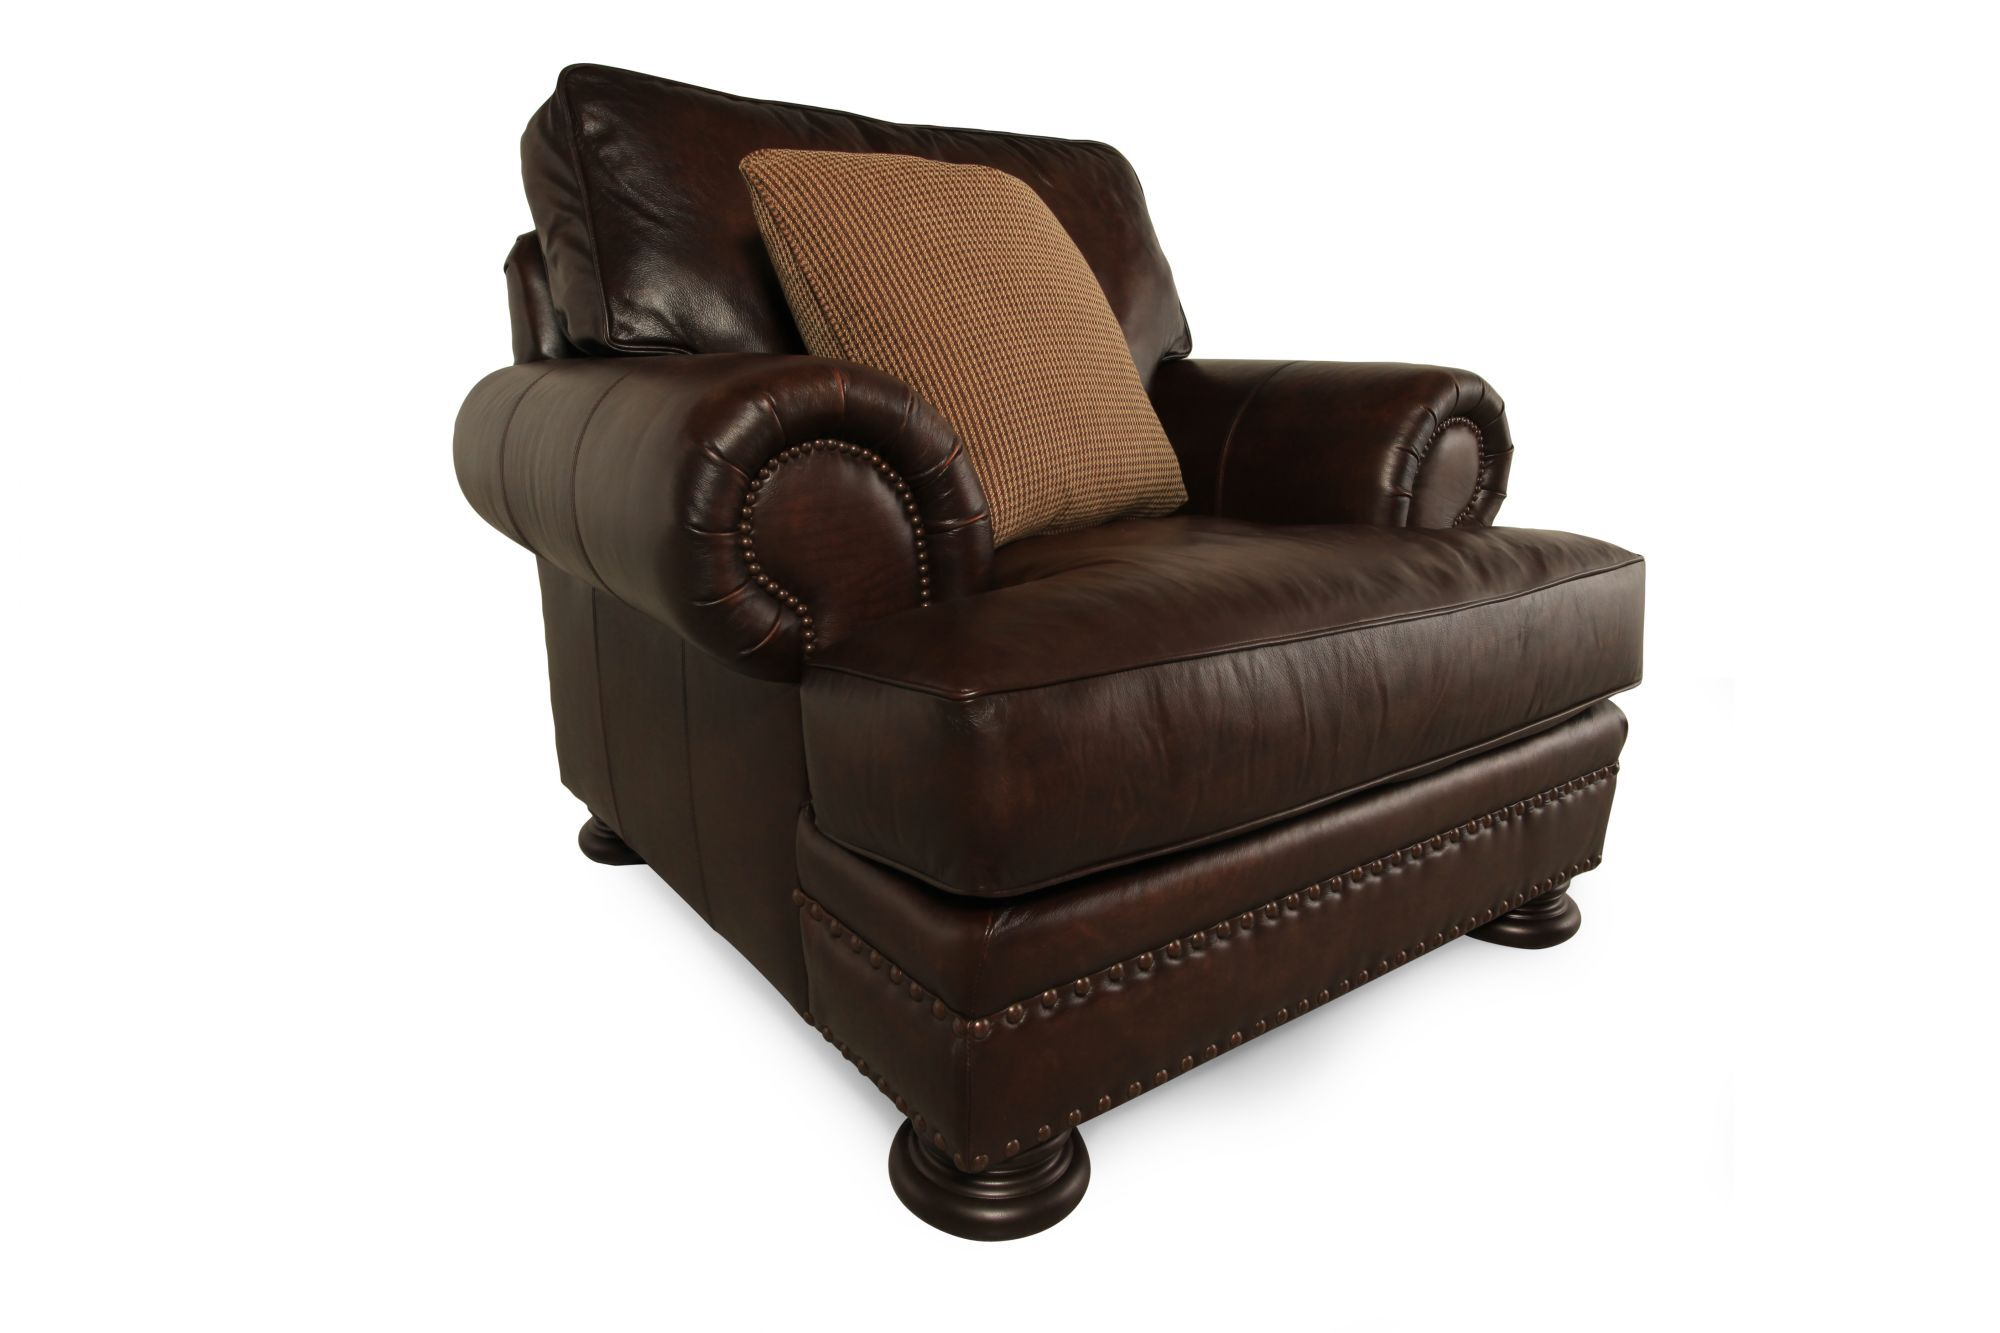 Bernhardt Leather Chair Bernhardt Foster Leather Chair Mathis Brothers Furniture